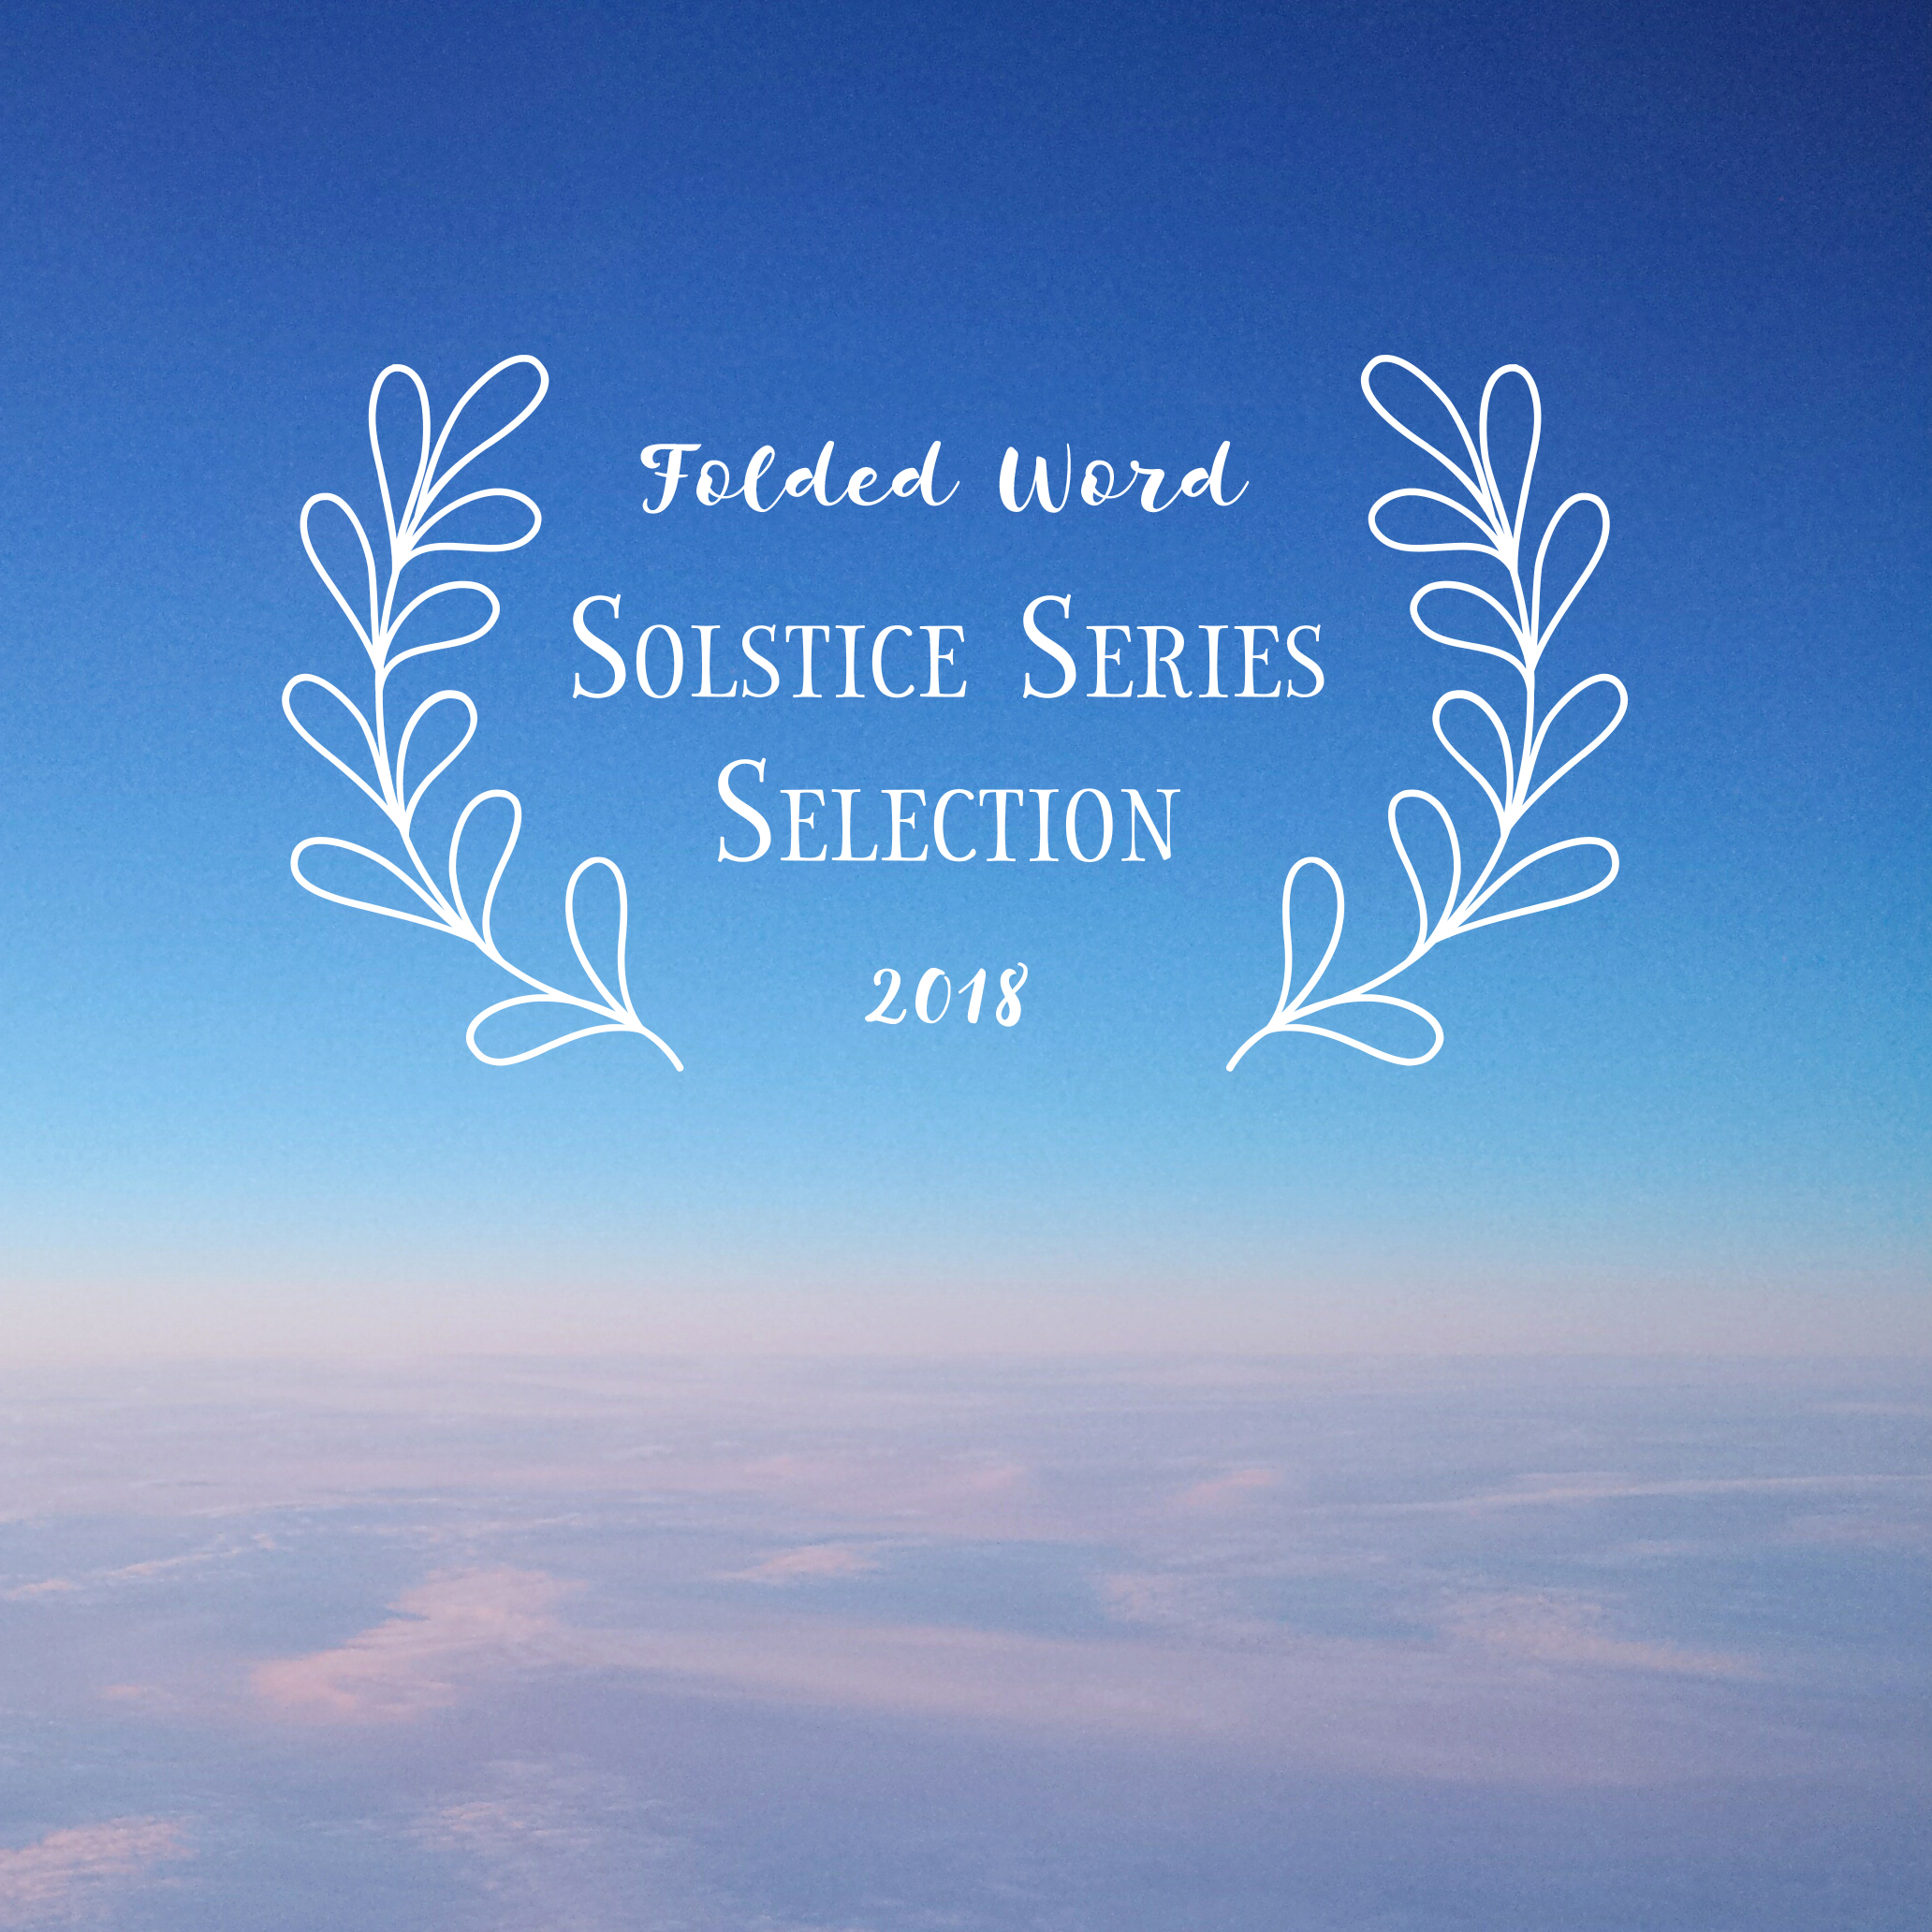 Solstice Series Selection Summer 2018